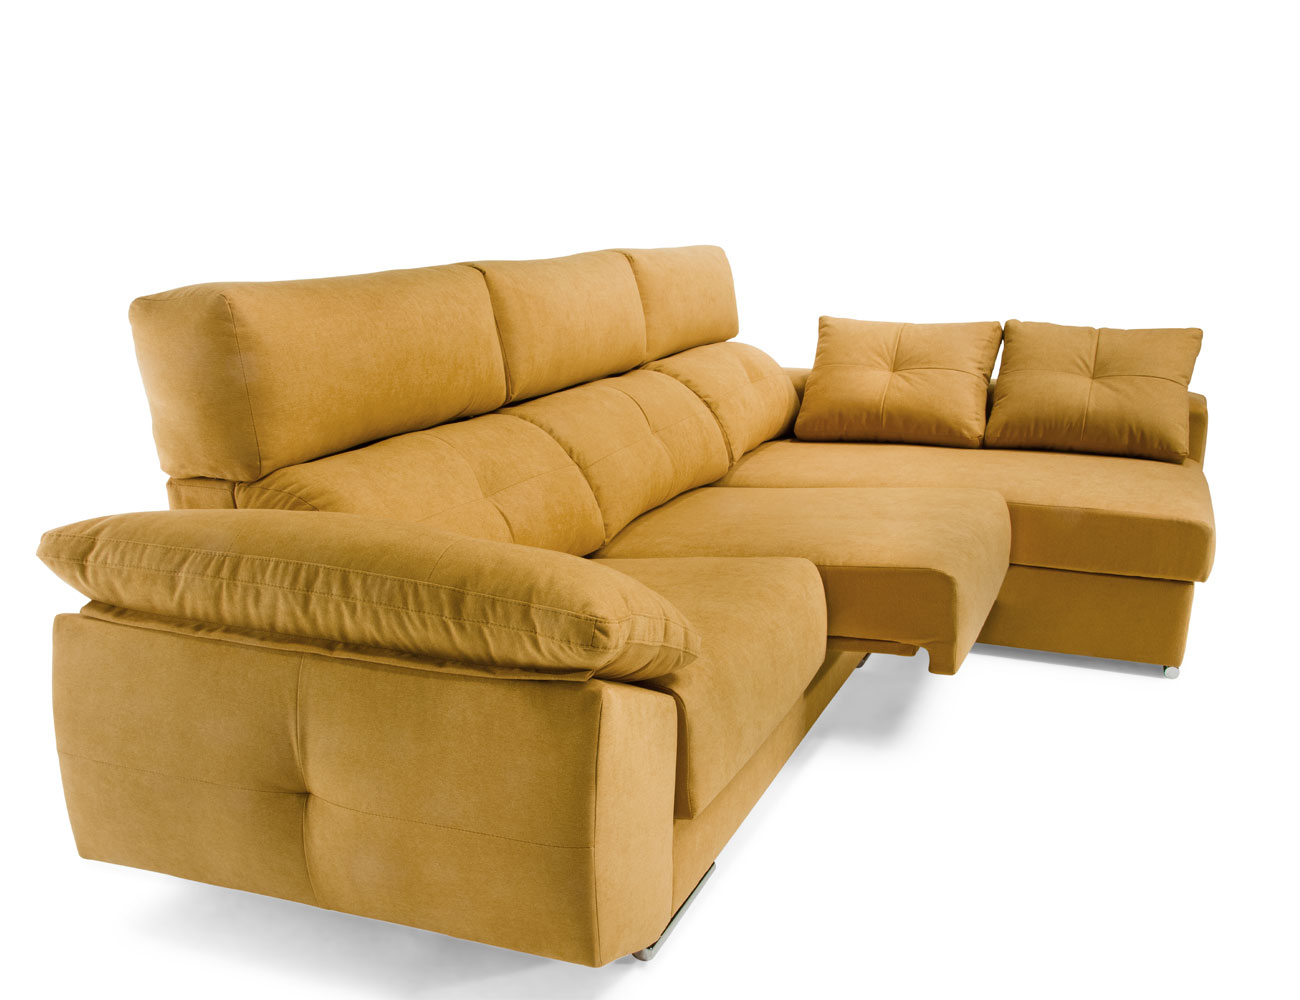 Sofa chaiselongue mostaza 1